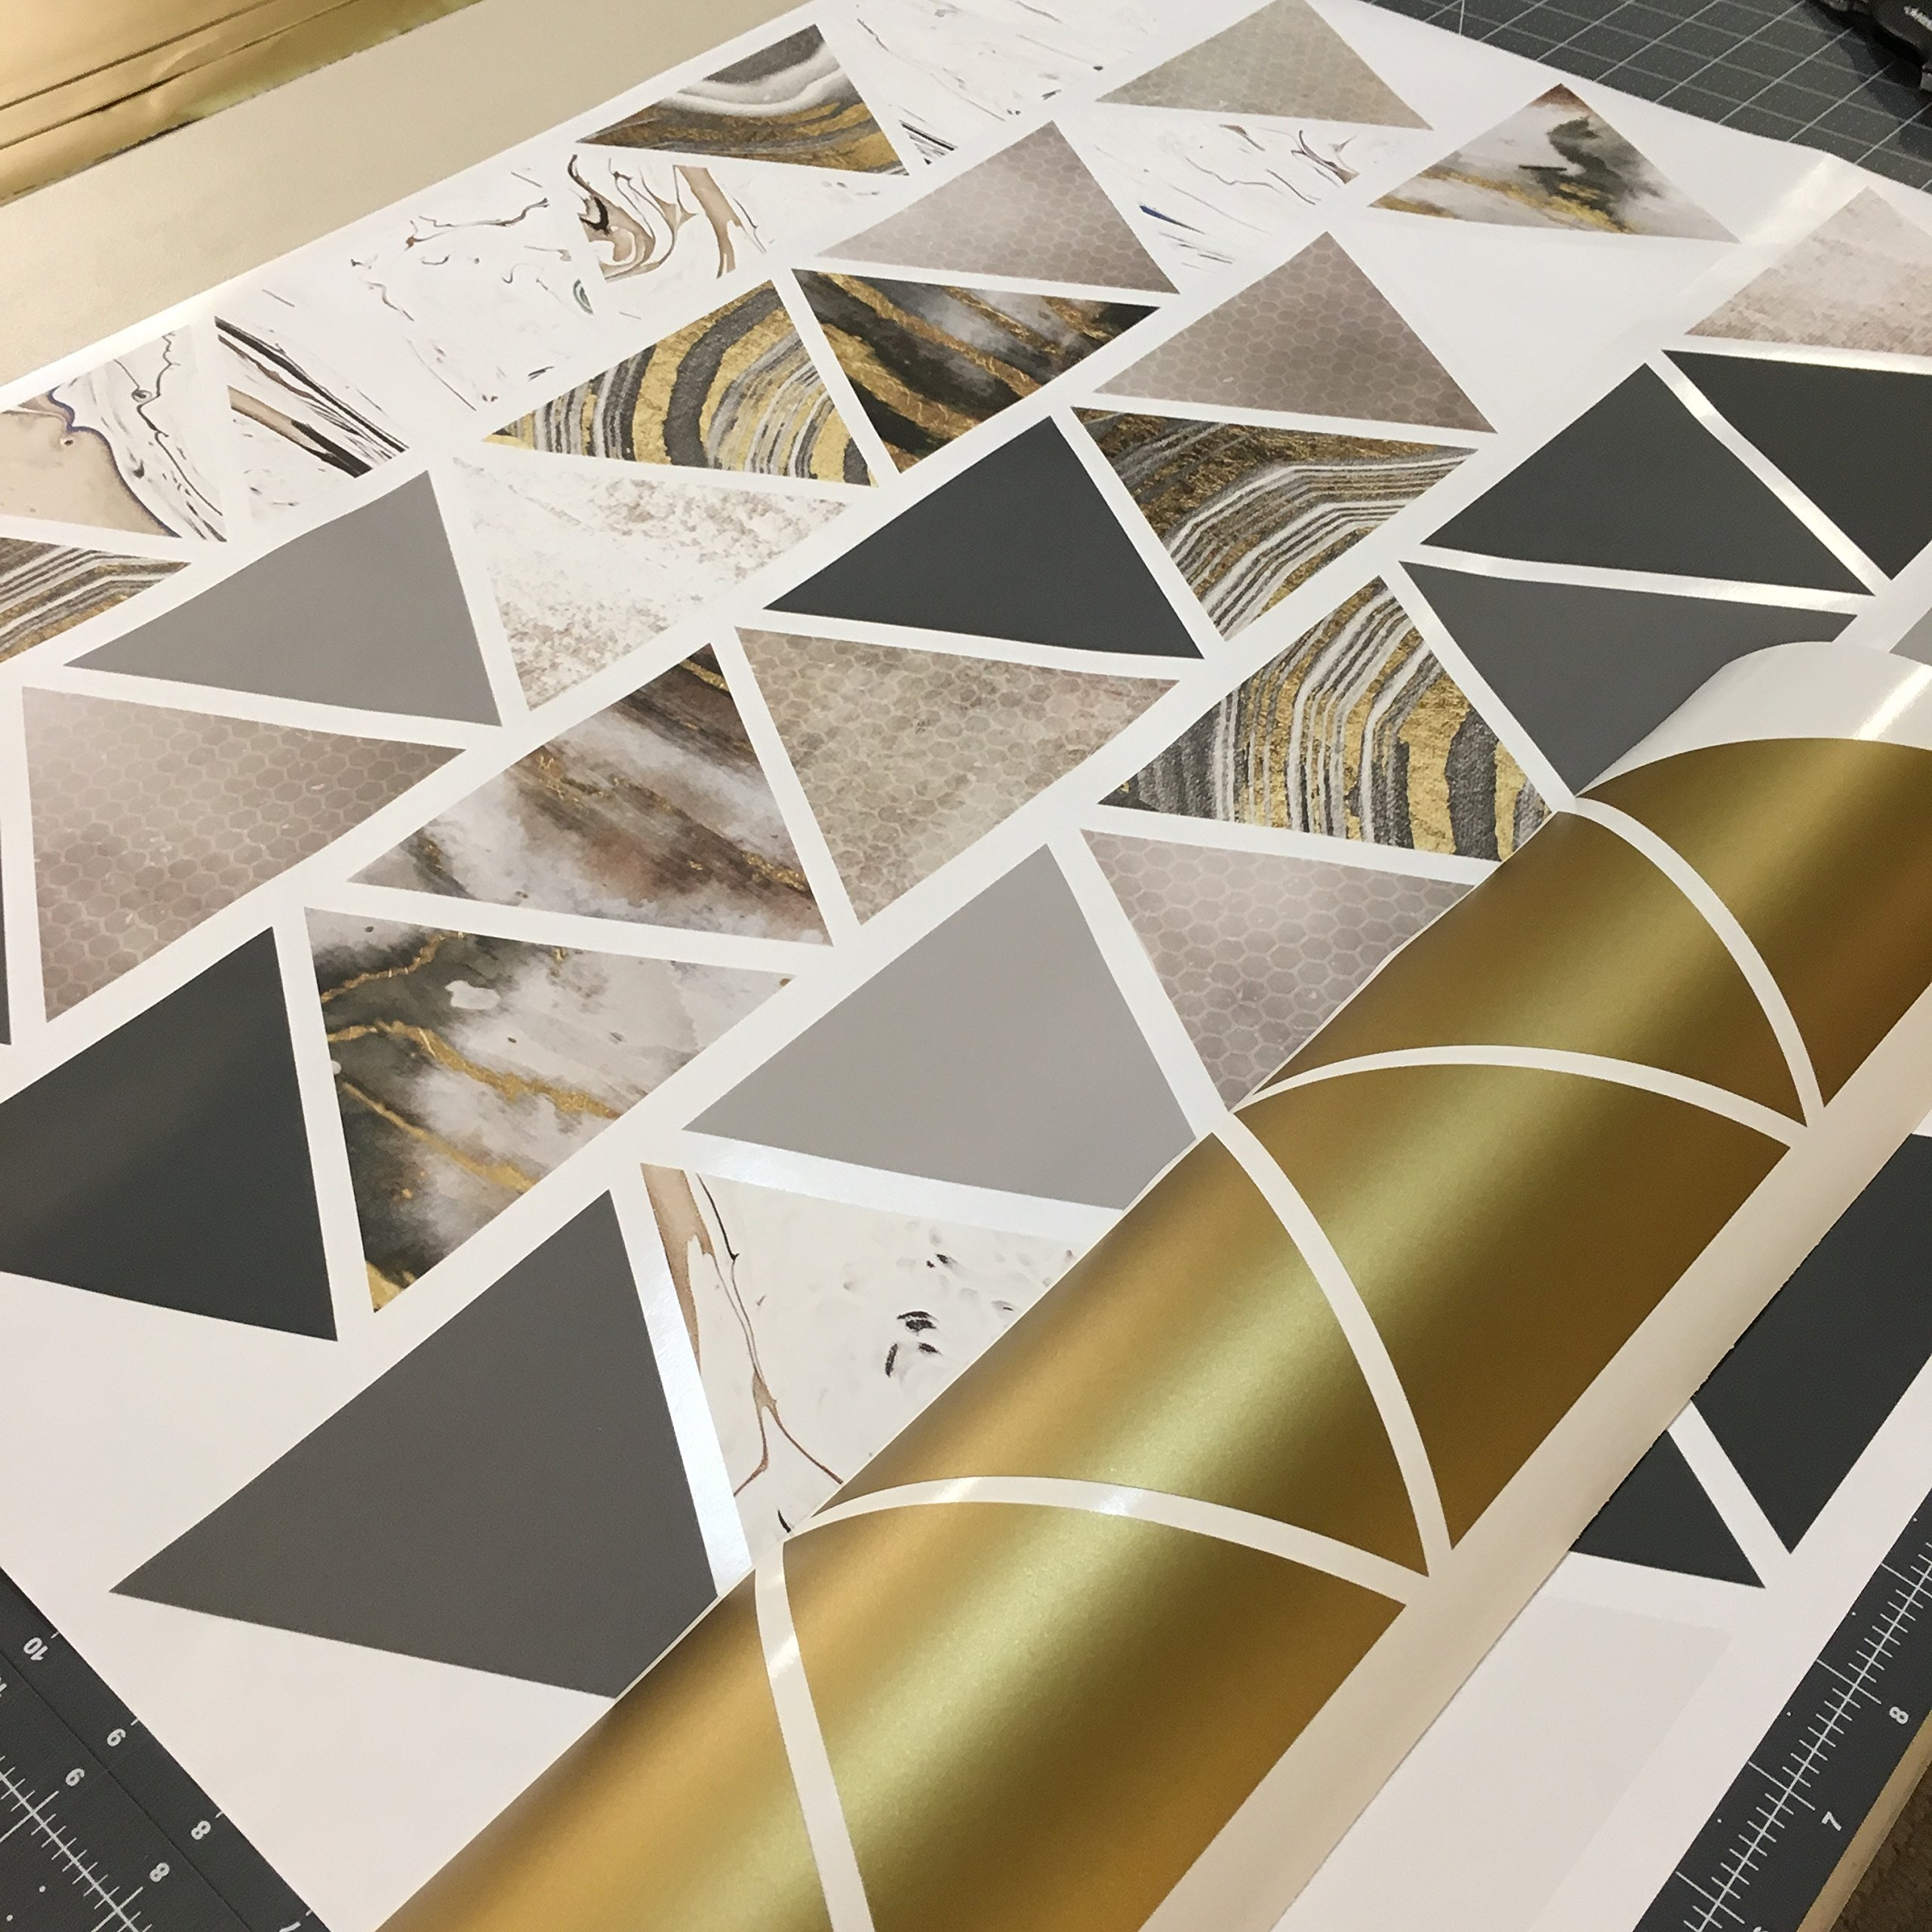 Modern Art Wall Decals, Gold, Gray, Marble, Triangles, Geometric Decals, Repositionable, Fabric Wall Decals Plus 6 Bonus Metallic Gold Triangle Vinyl Decals by Wall Dressed Up (Image #5)